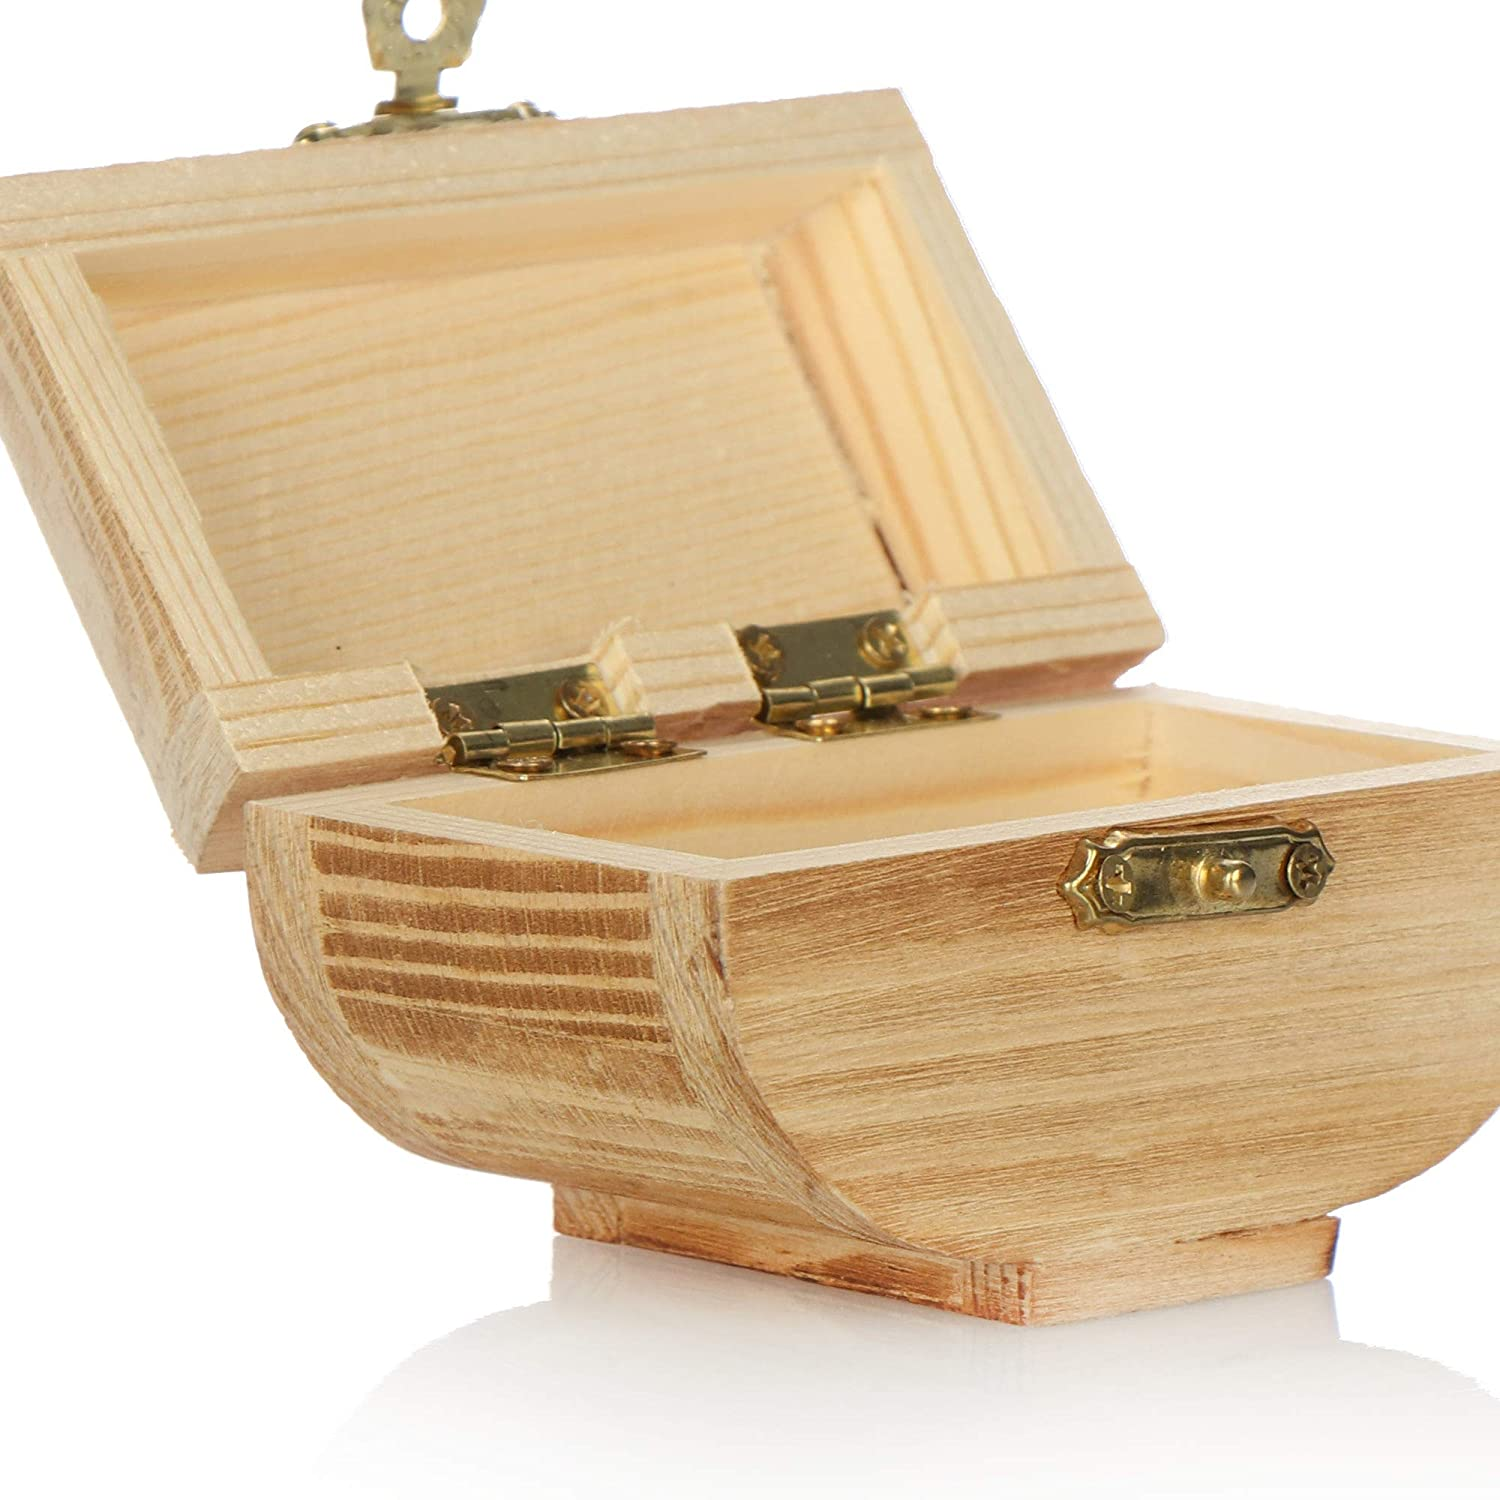 wooden box wooden box jewelry box com-four/® 2x wooden box for storing jewelry decorative jewelry box 2 pieces - chest small wooden box with lid